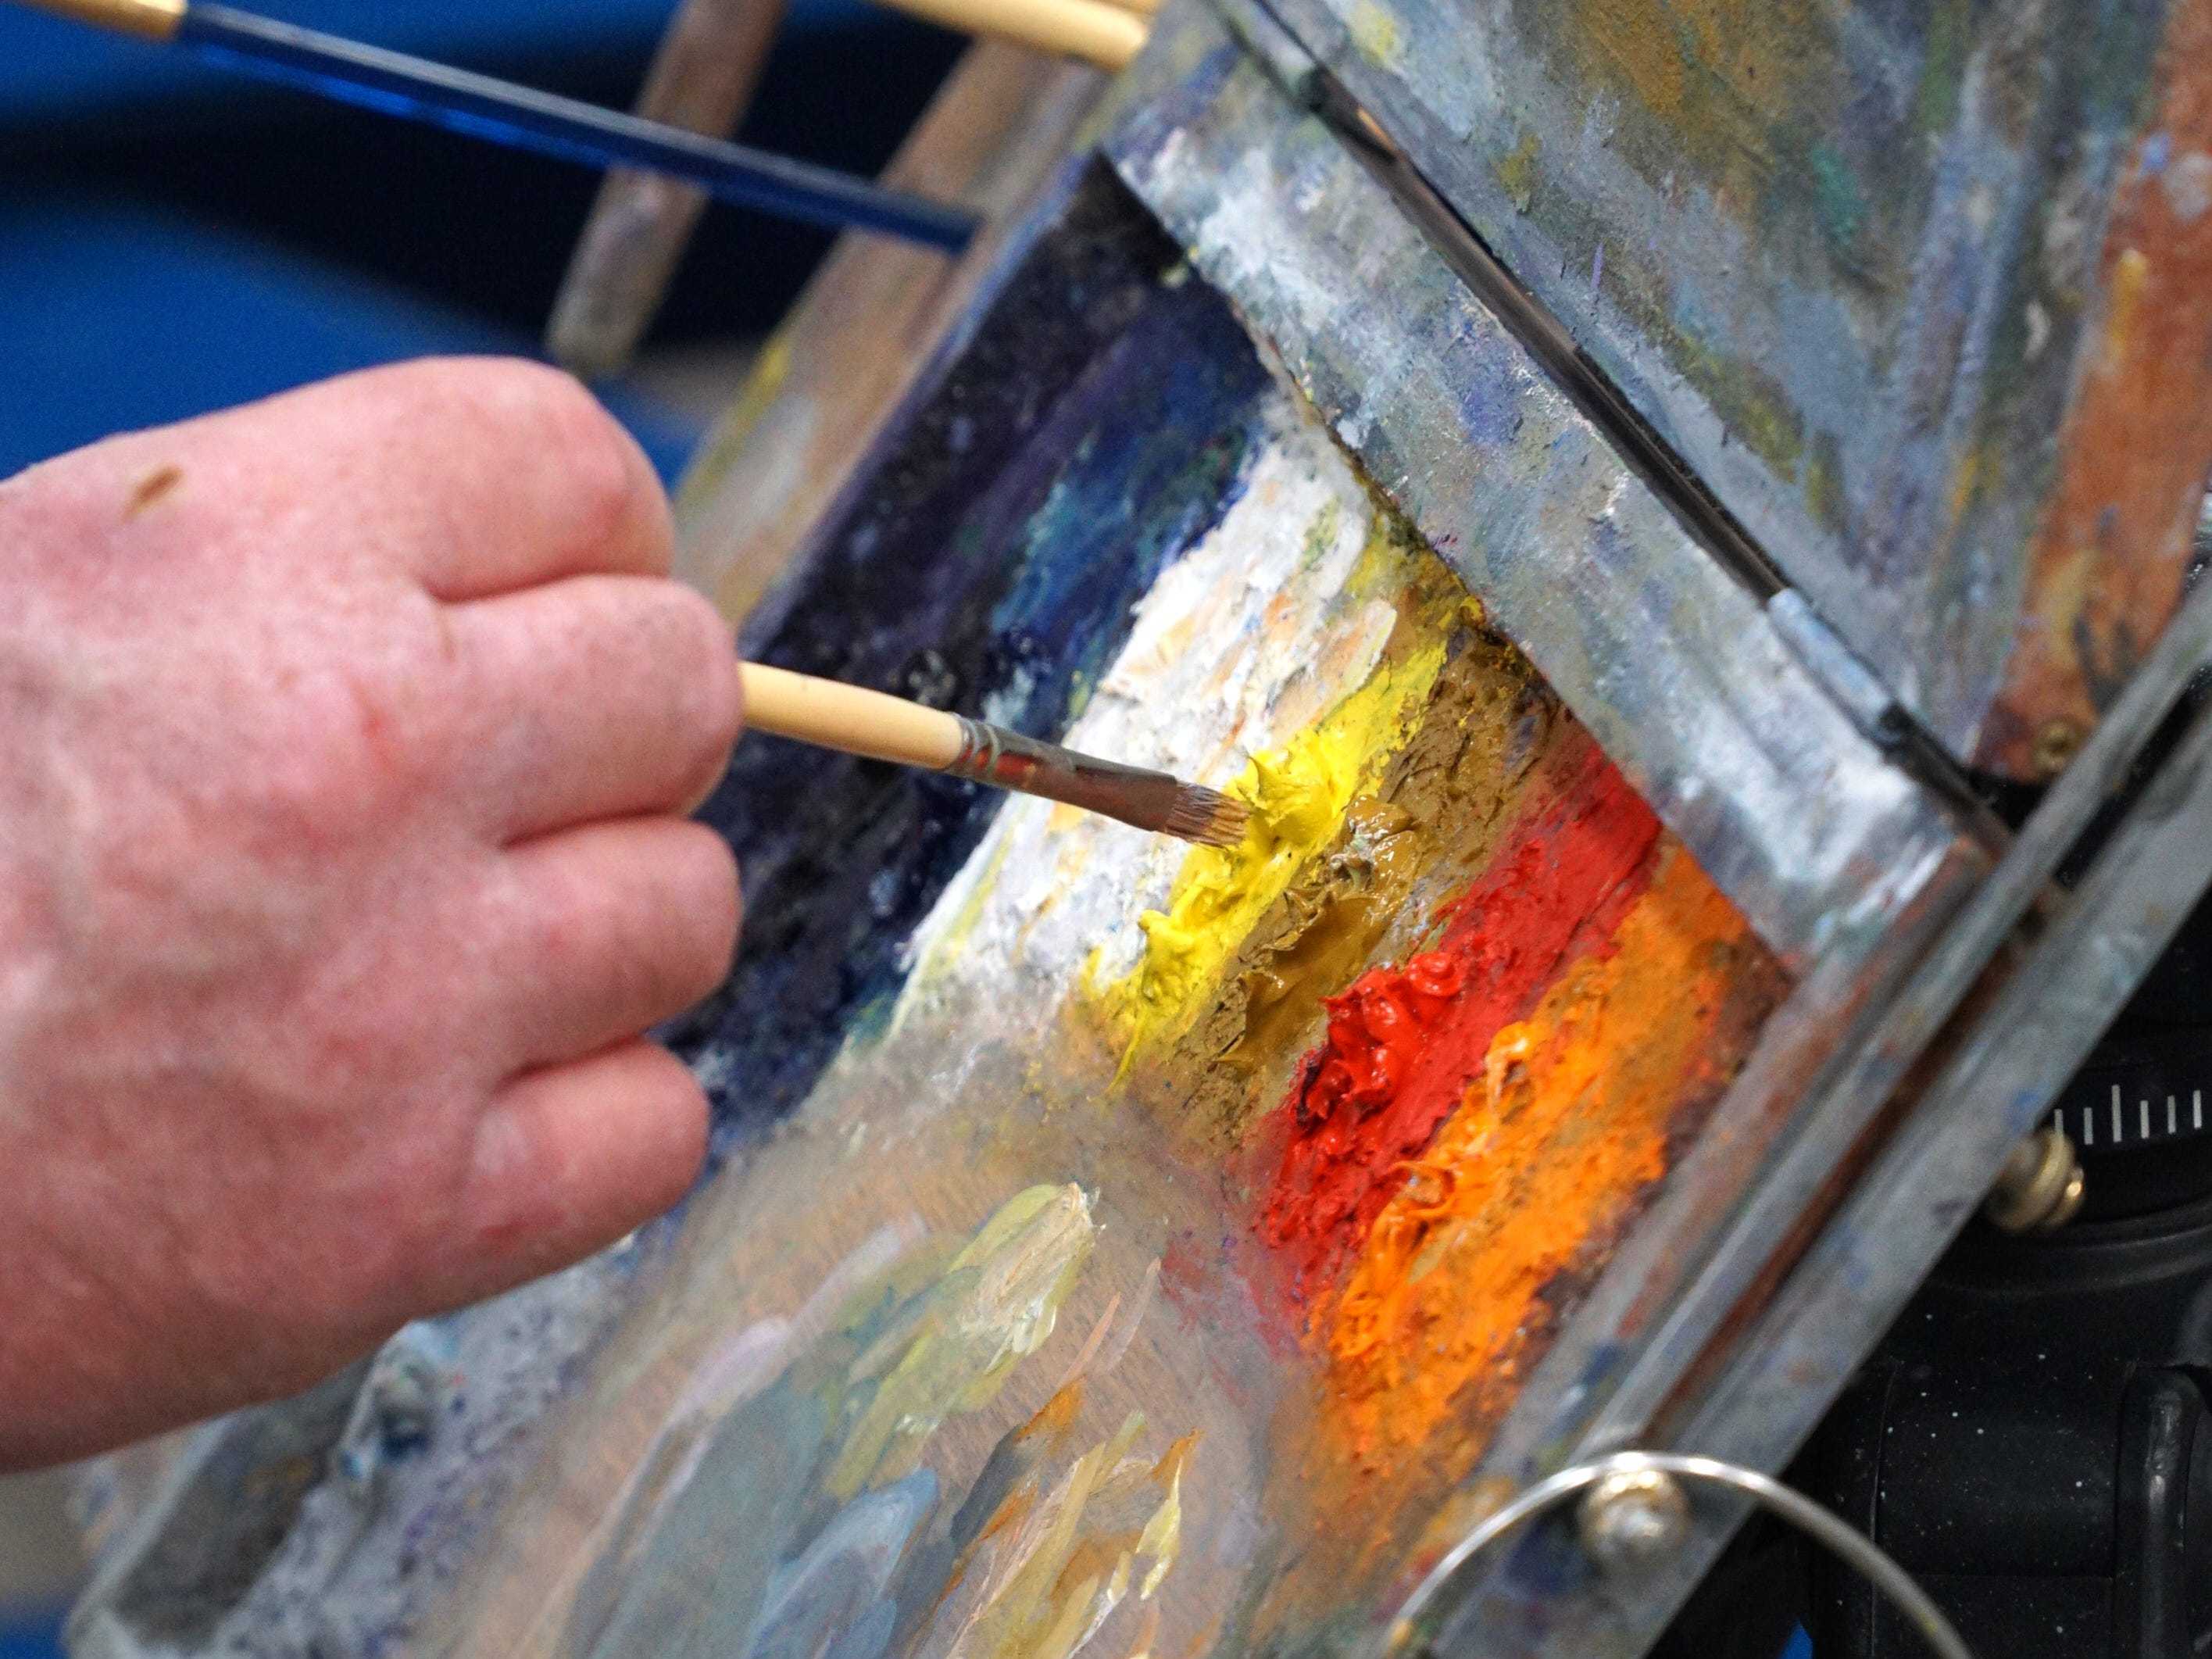 Mike Todoroff gets some yellow oil paint from his palette during his April 1 class at Milford's SHAC.